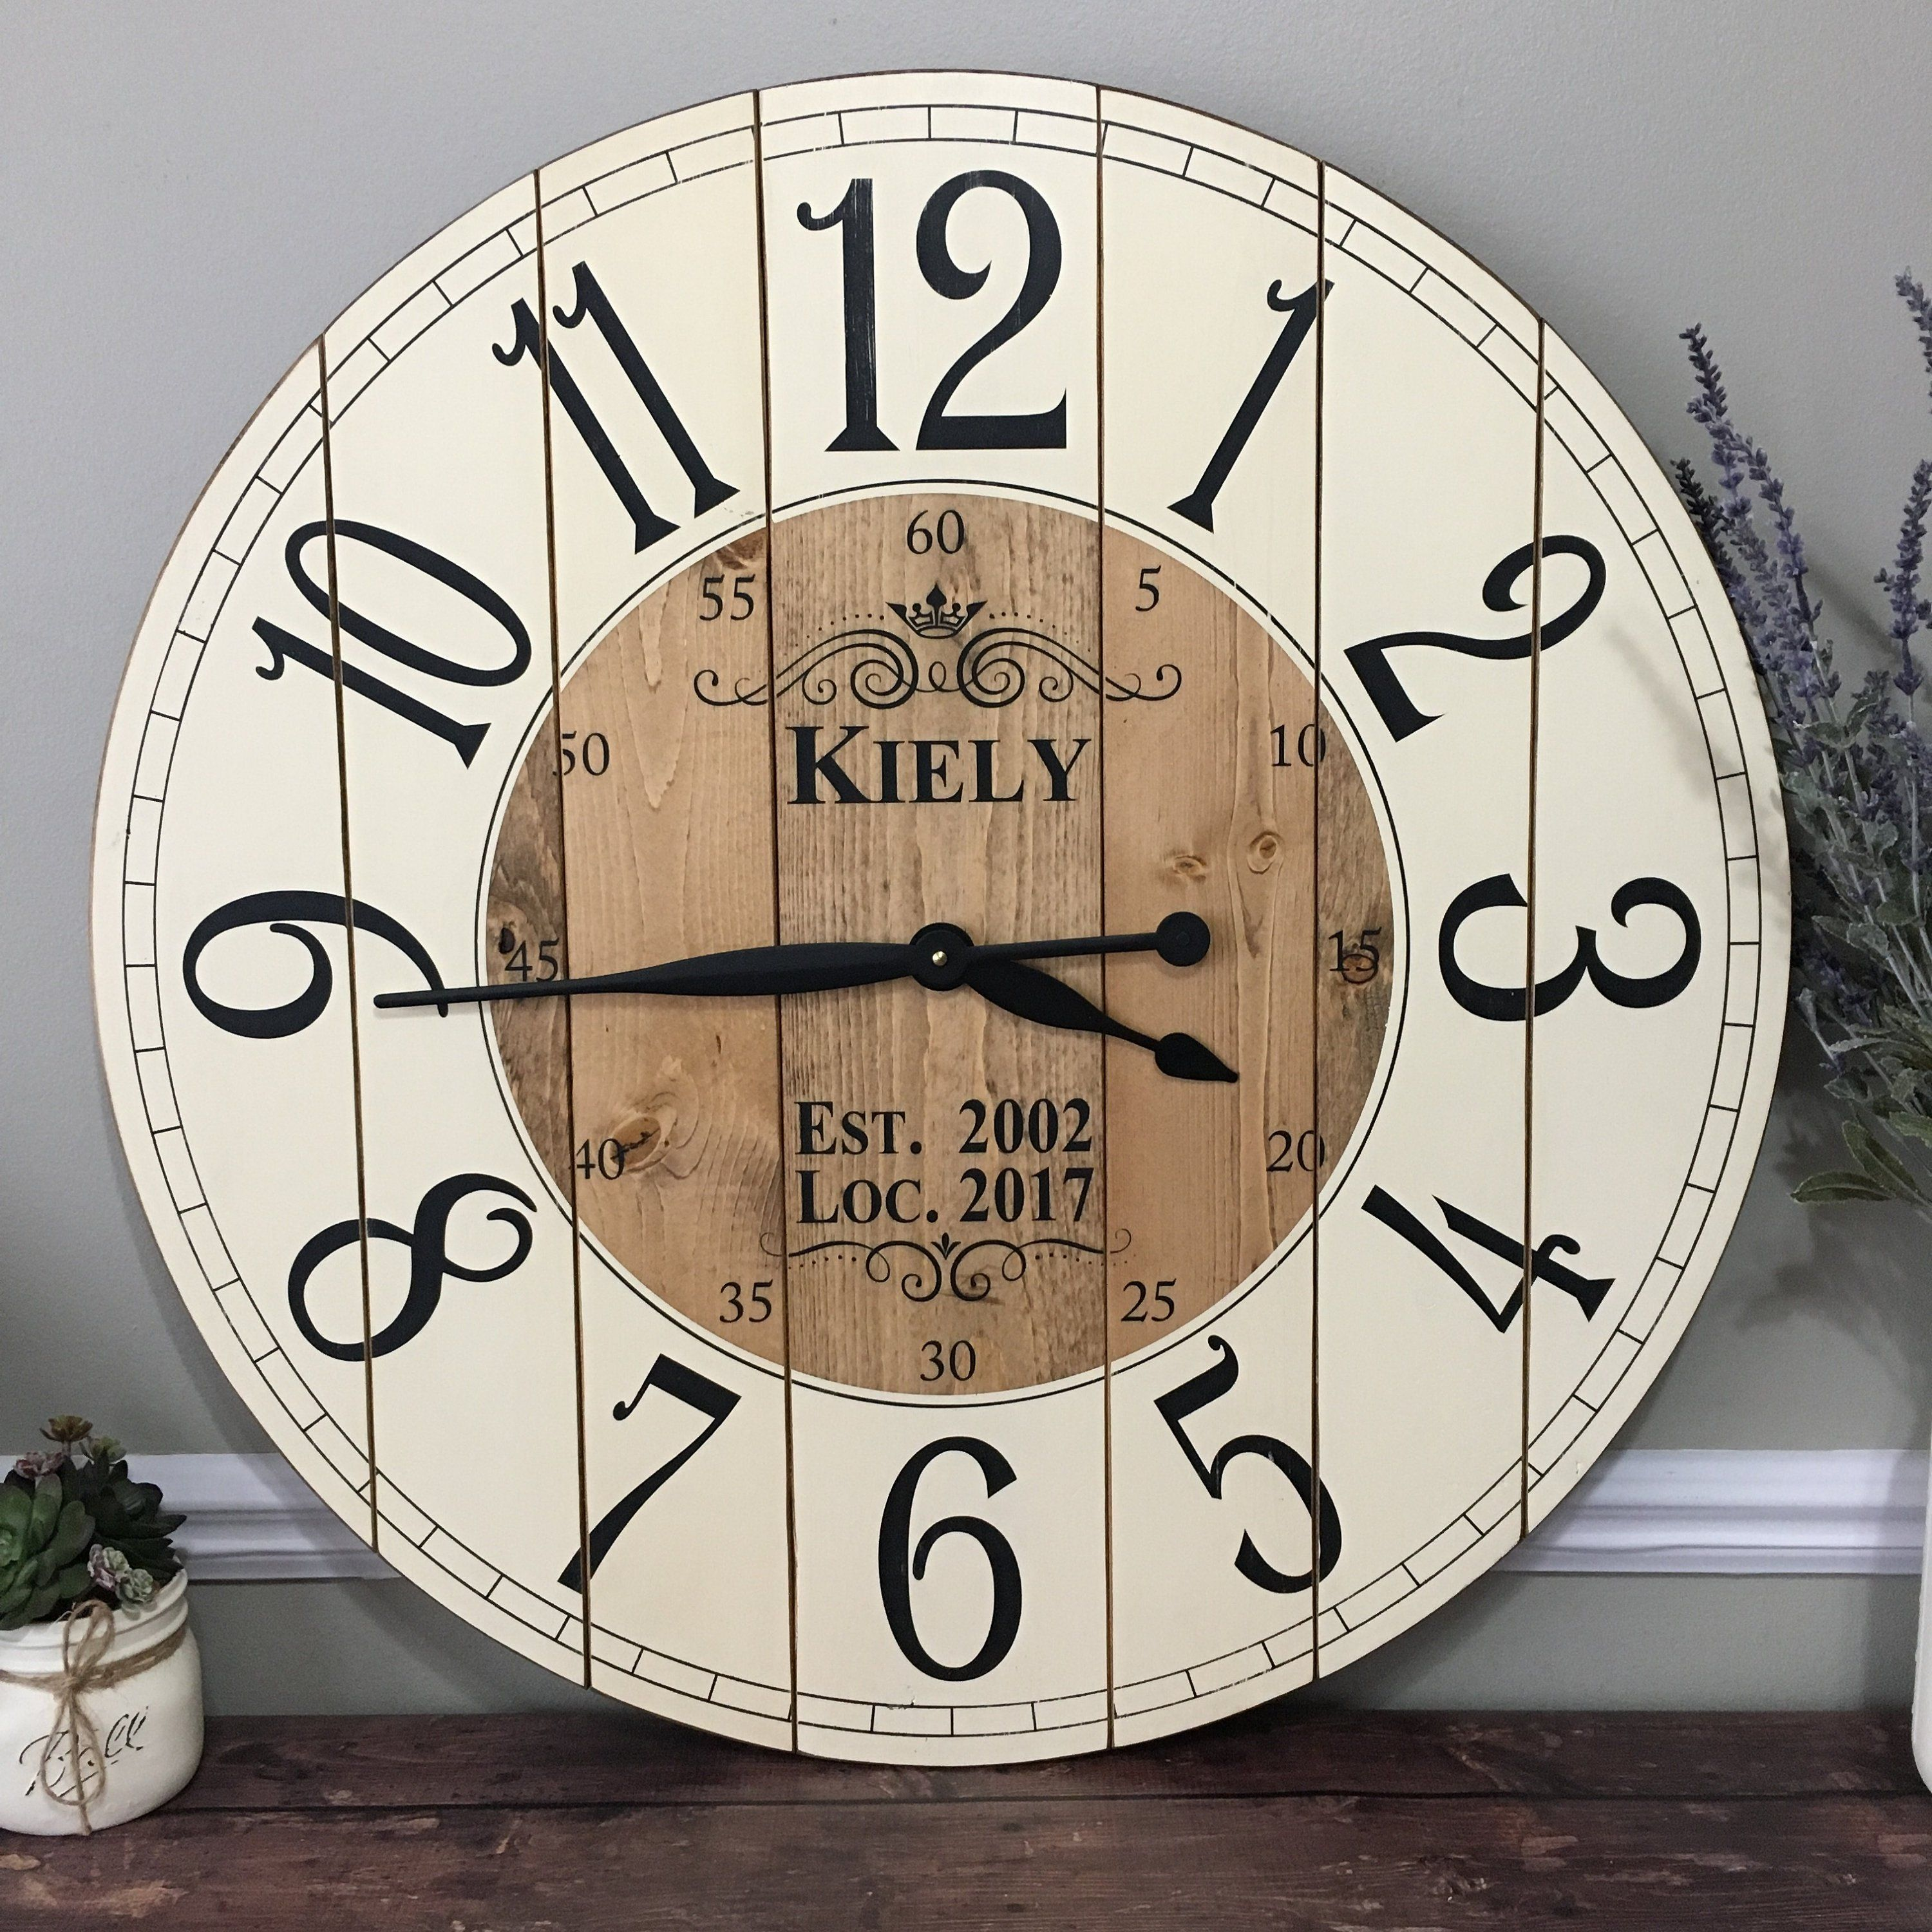 32 Inch Farmhouse Clock With Arabic Numbers Interesting